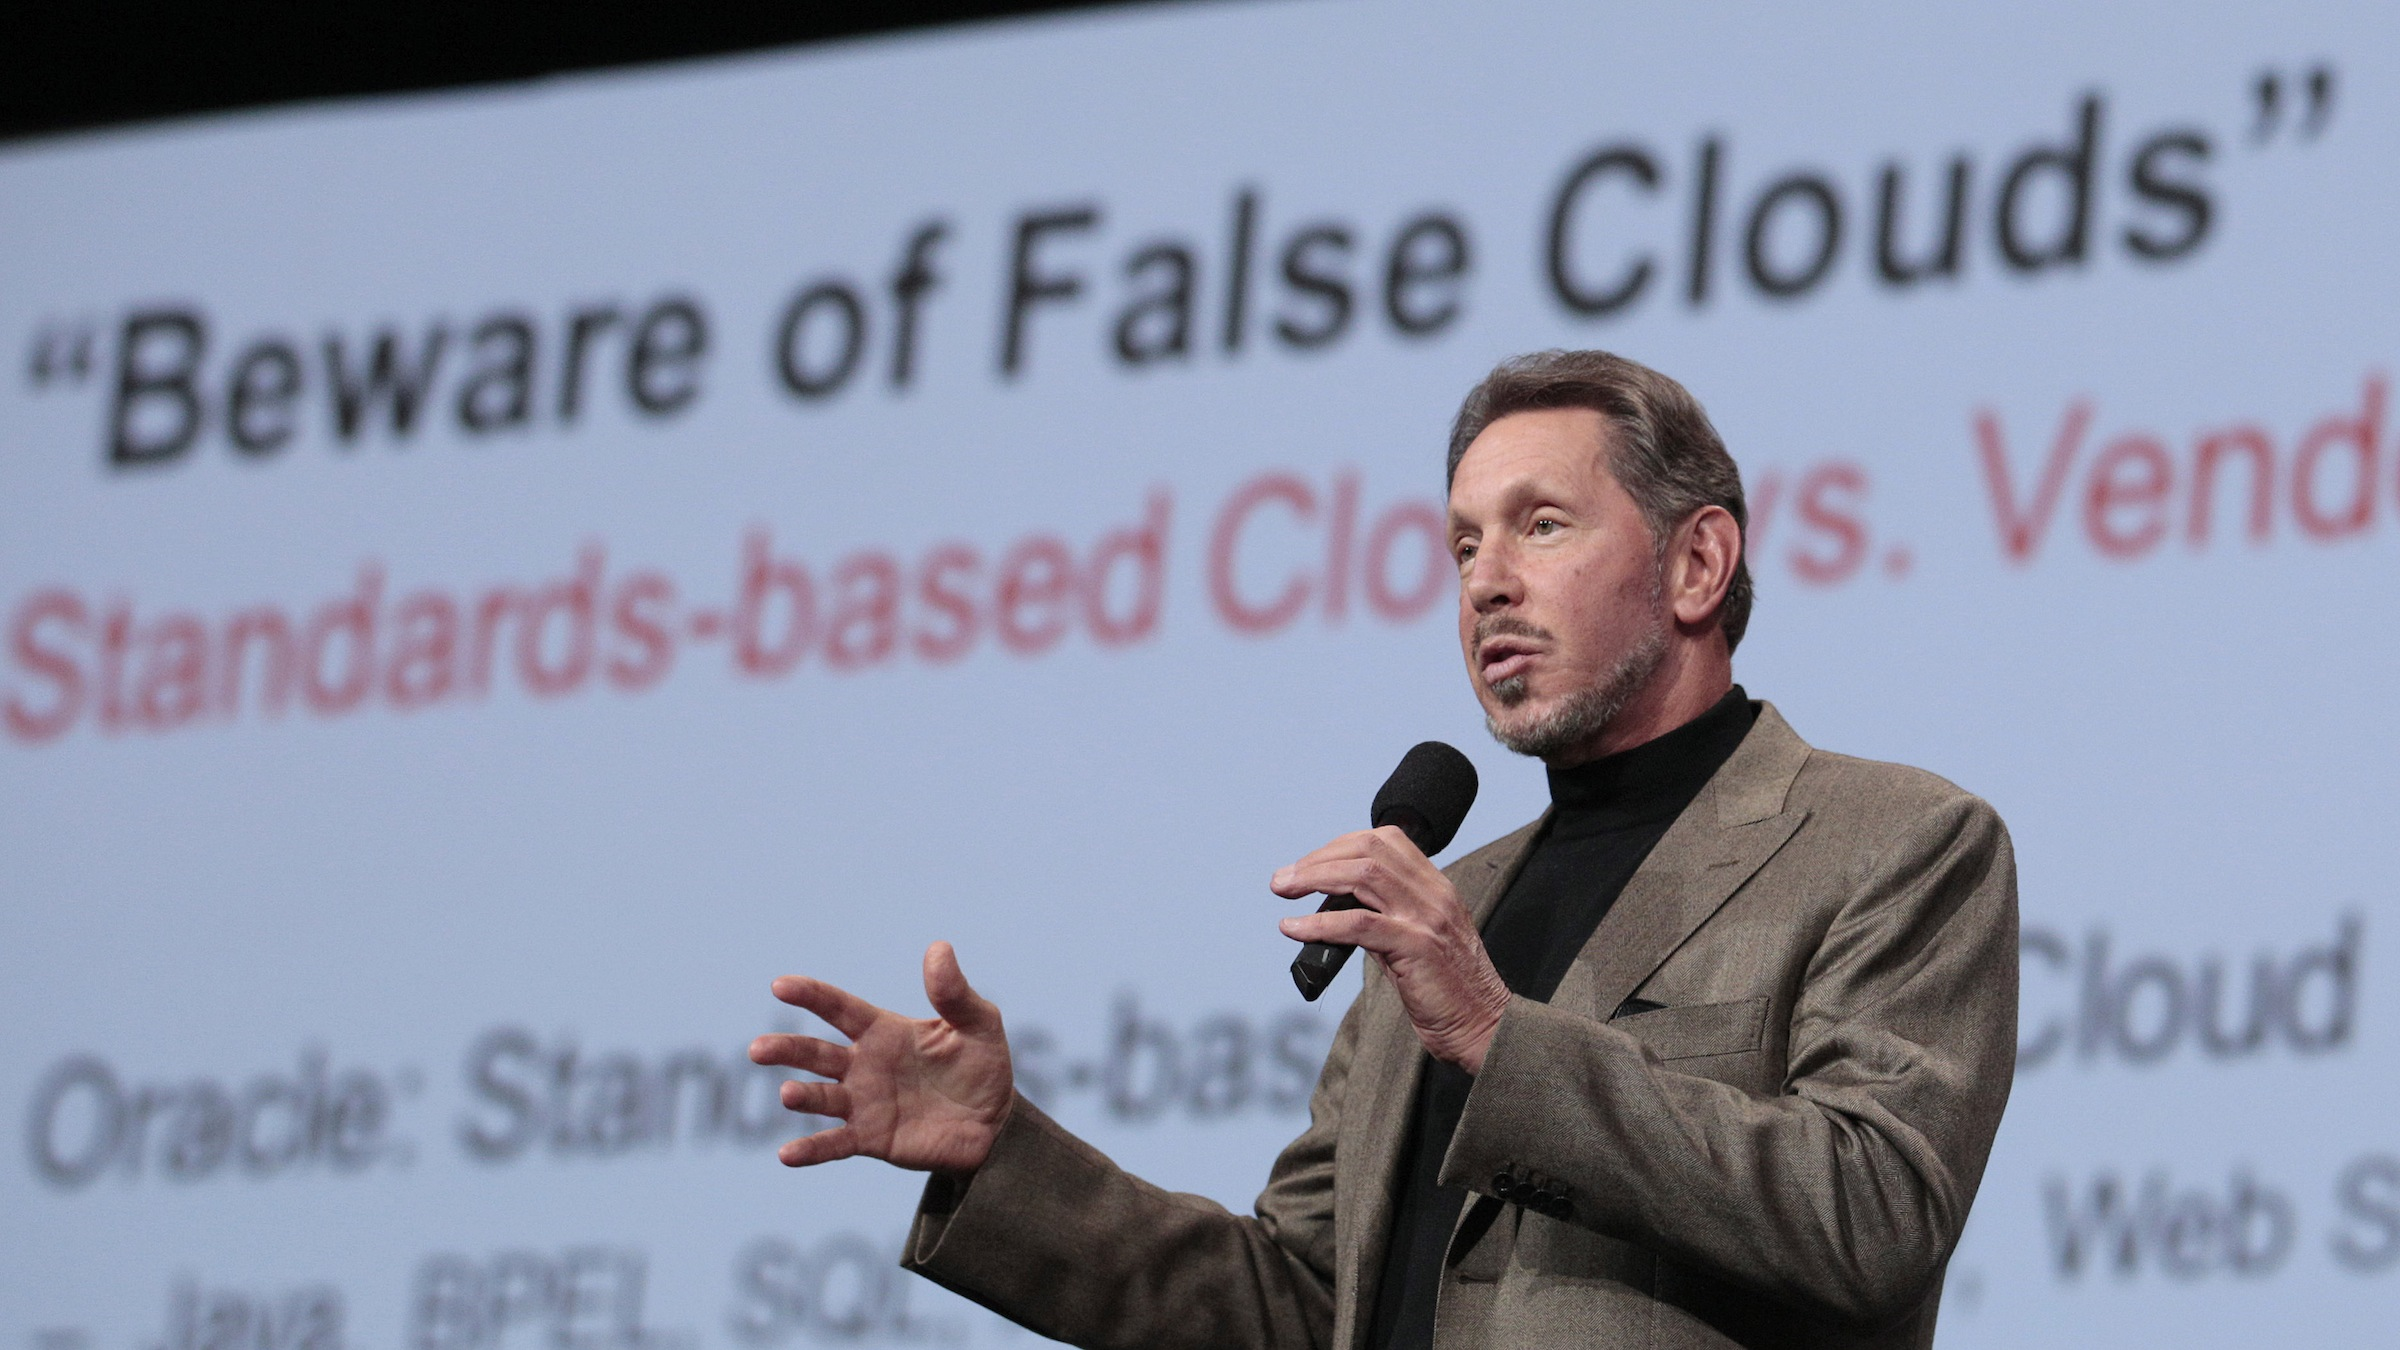 speaks during the Oracle OpenWorld Keynote in San Francisco, Wednesday, Oct. 5, 2011. (AP Photo/Jeff Chiu)